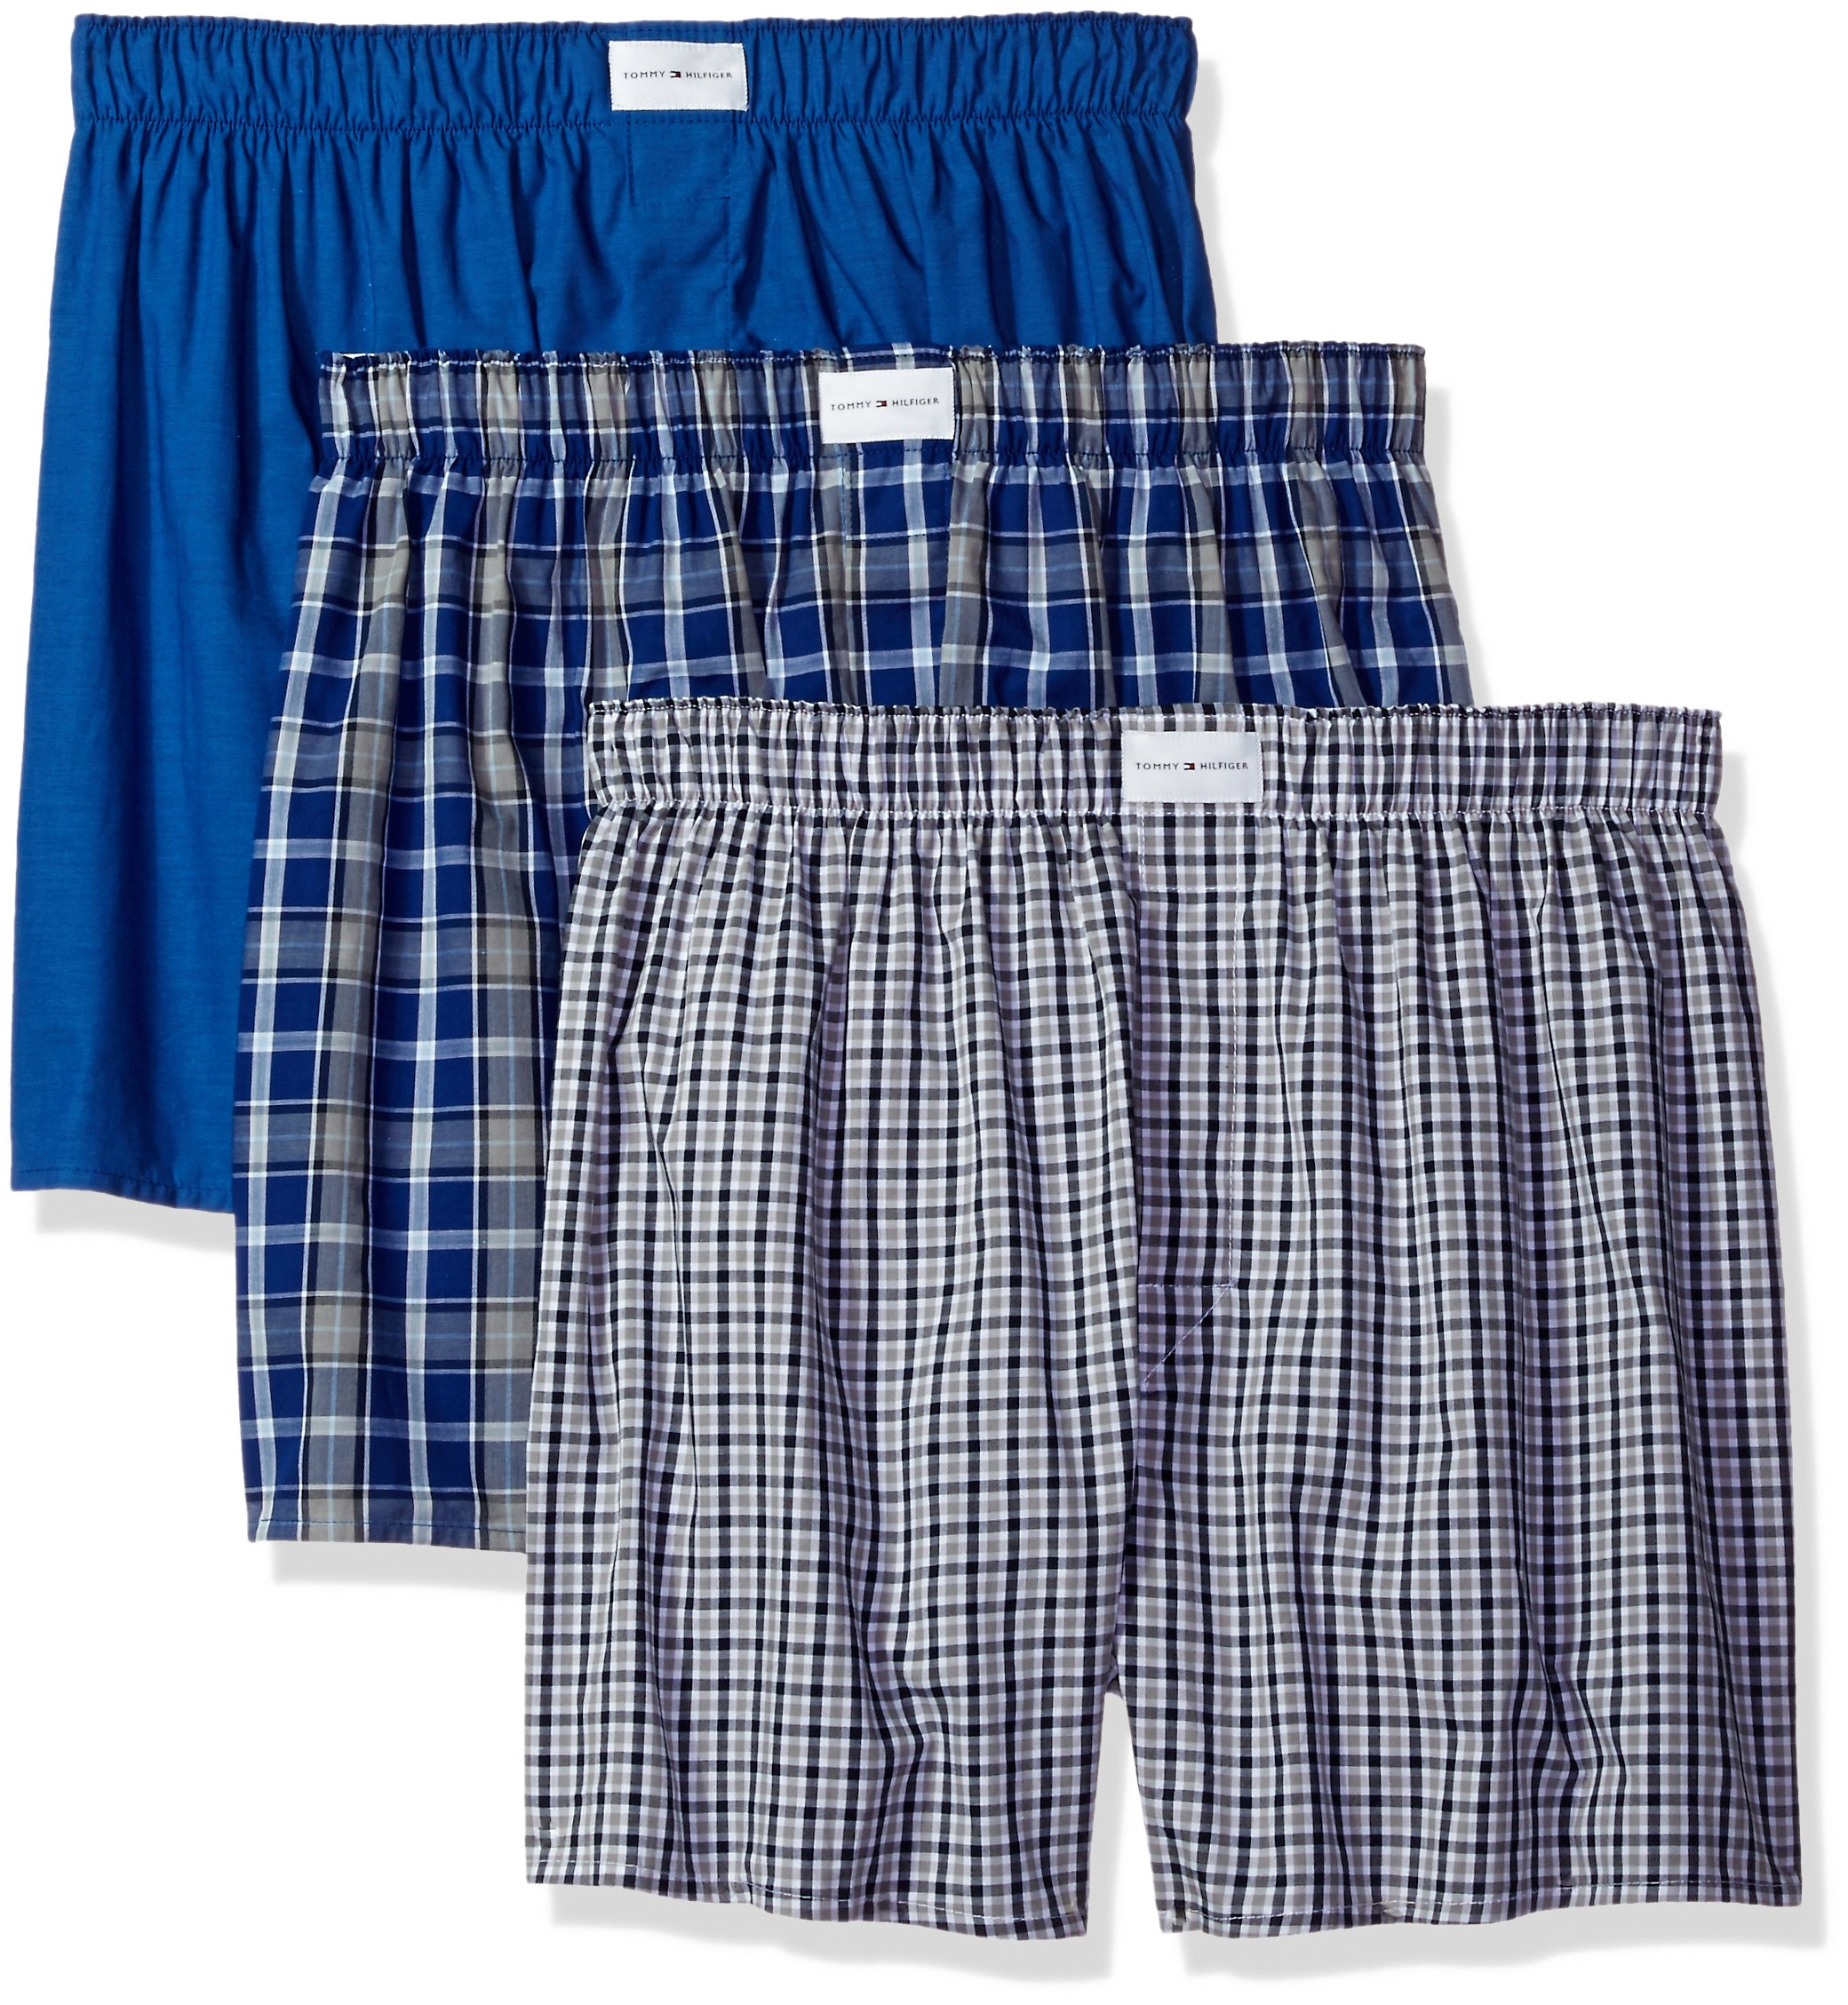 Tommy Hilfiger Men's Underwear 3 Pack Cotton Classics Woven Boxers, Blue Plaid/Solid Blue/Navy Plaid, Large